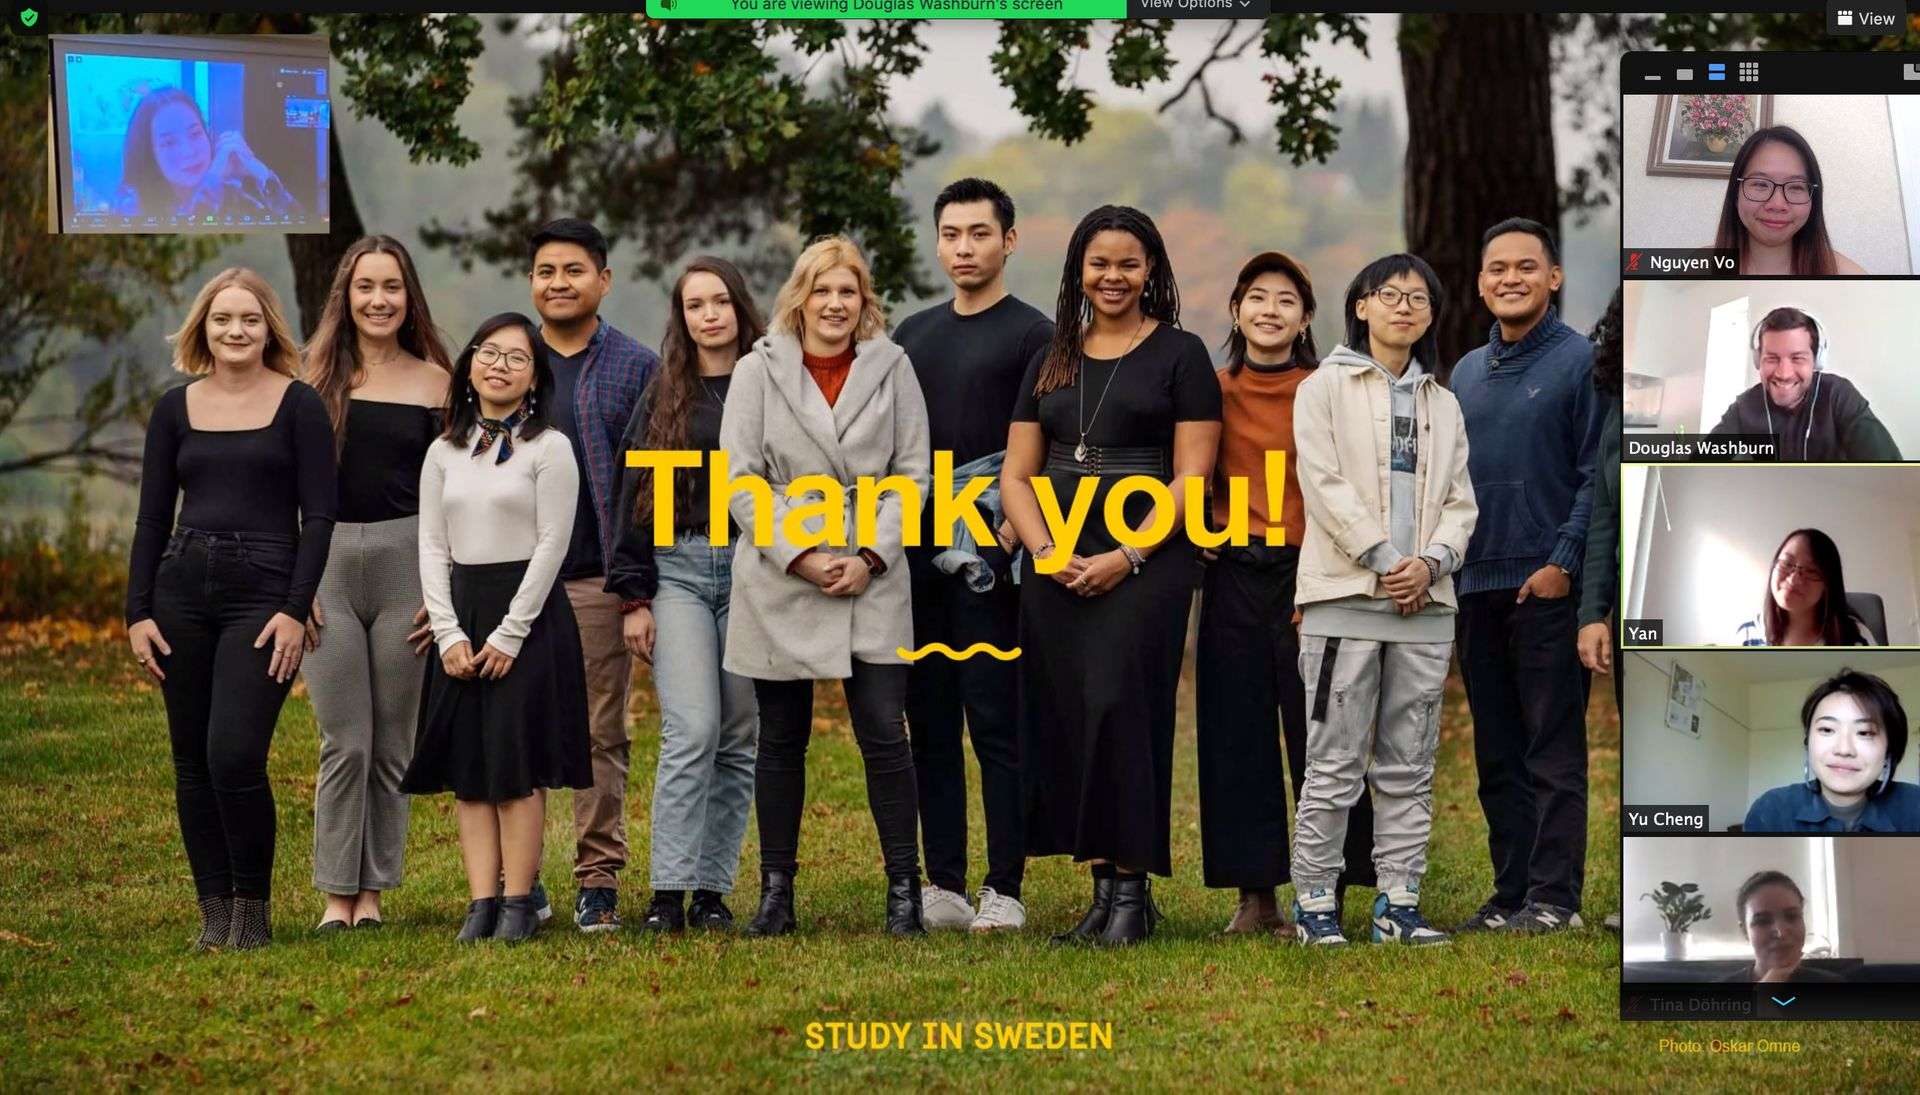 Thank you from Study in Sweden ambassadors